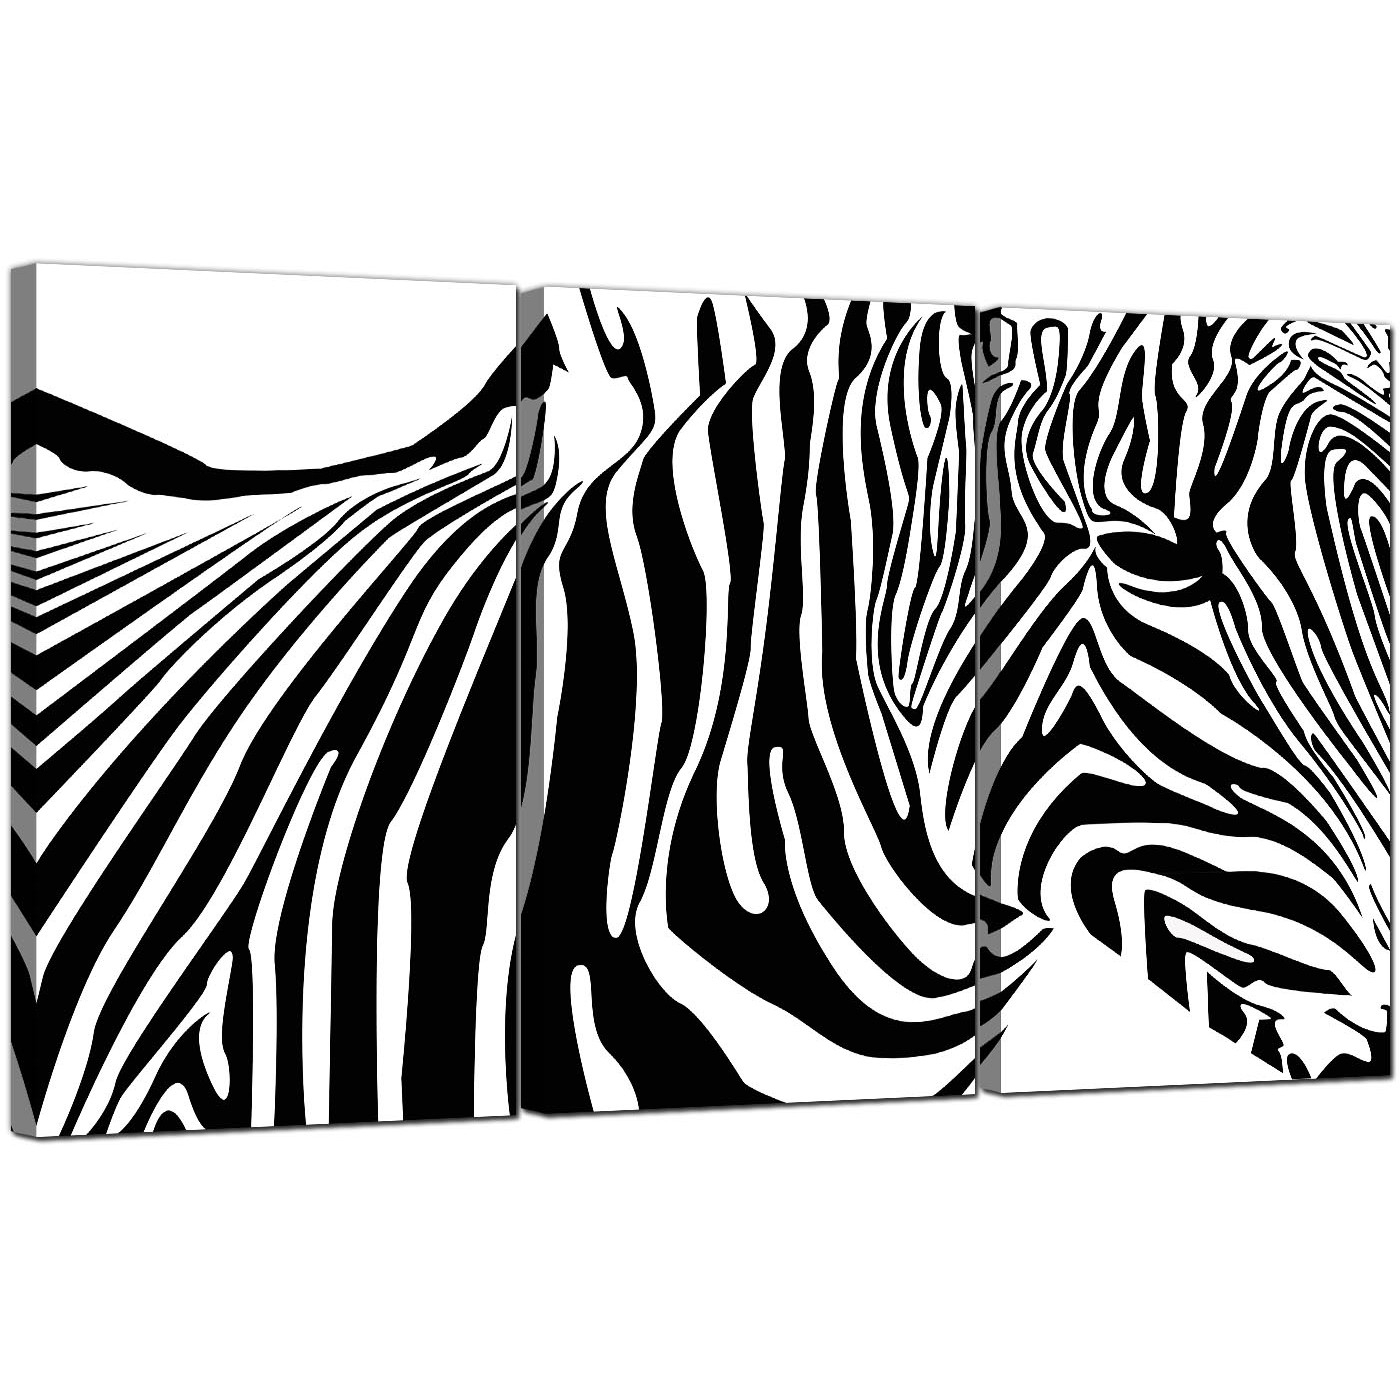 Zebra Canvas Pictures 3 Panel For Your Dining Room Inside Most Popular Zebra Canvas Wall Art (View 5 of 20)